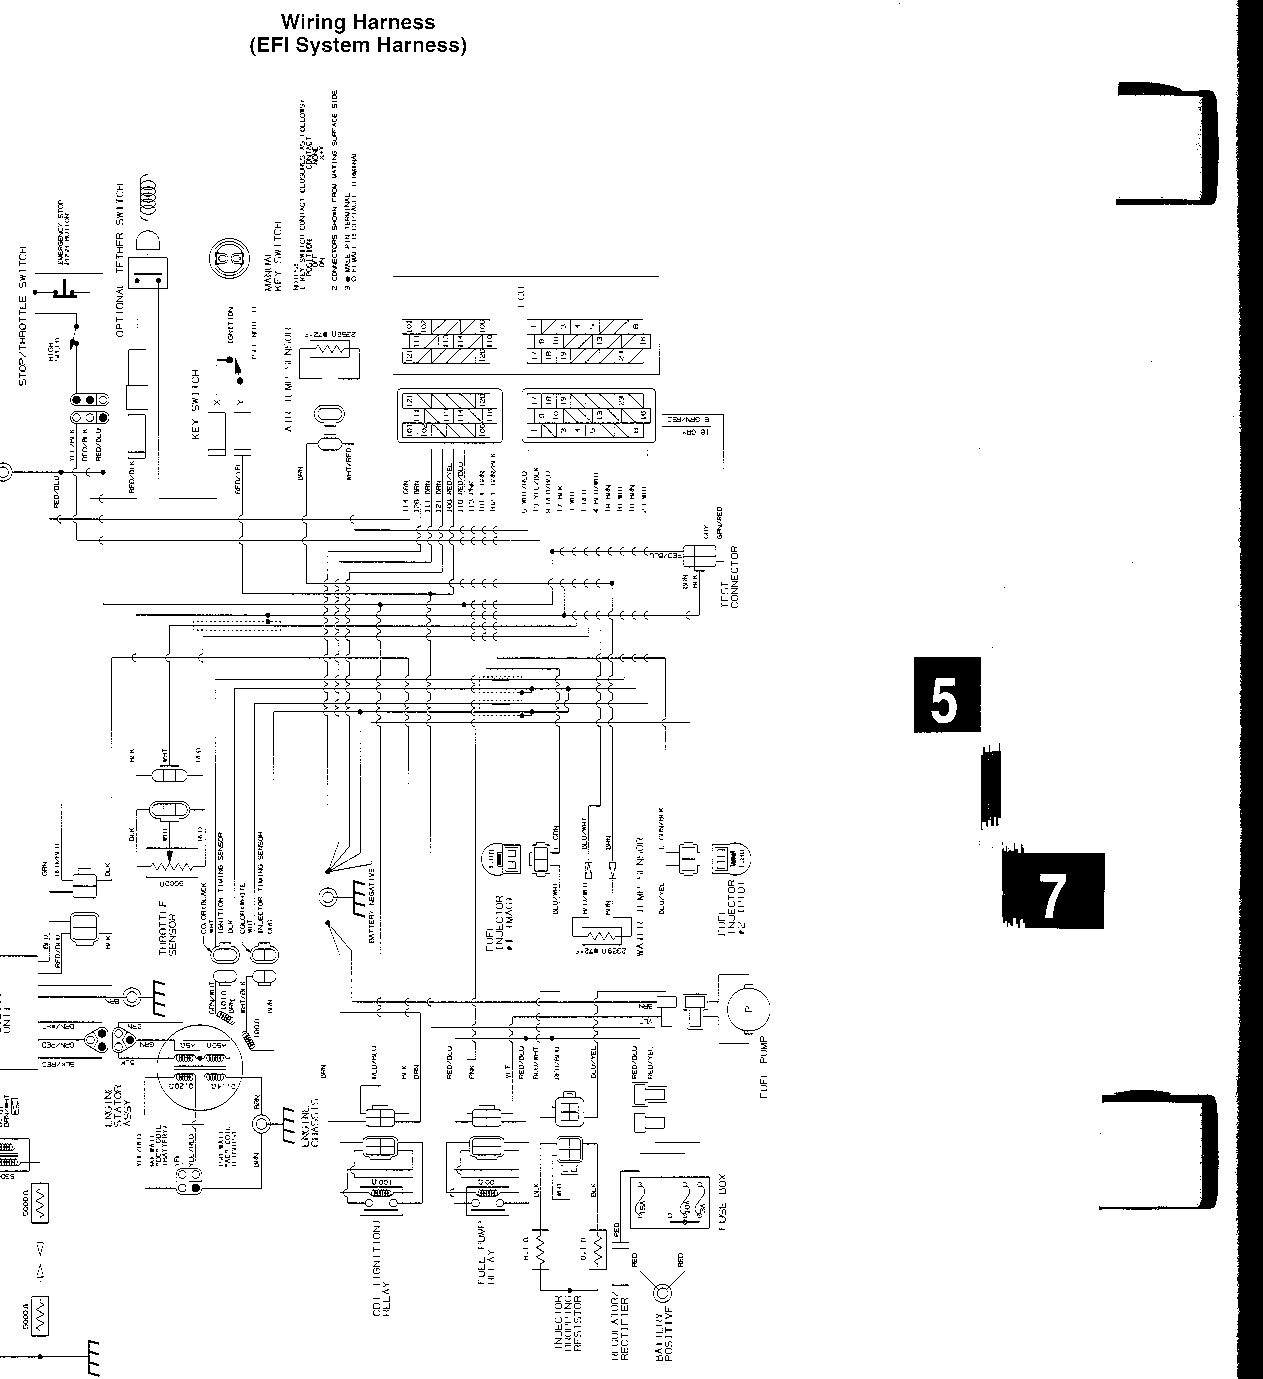 1995 arctic cat zr 580 efi wiring diagram